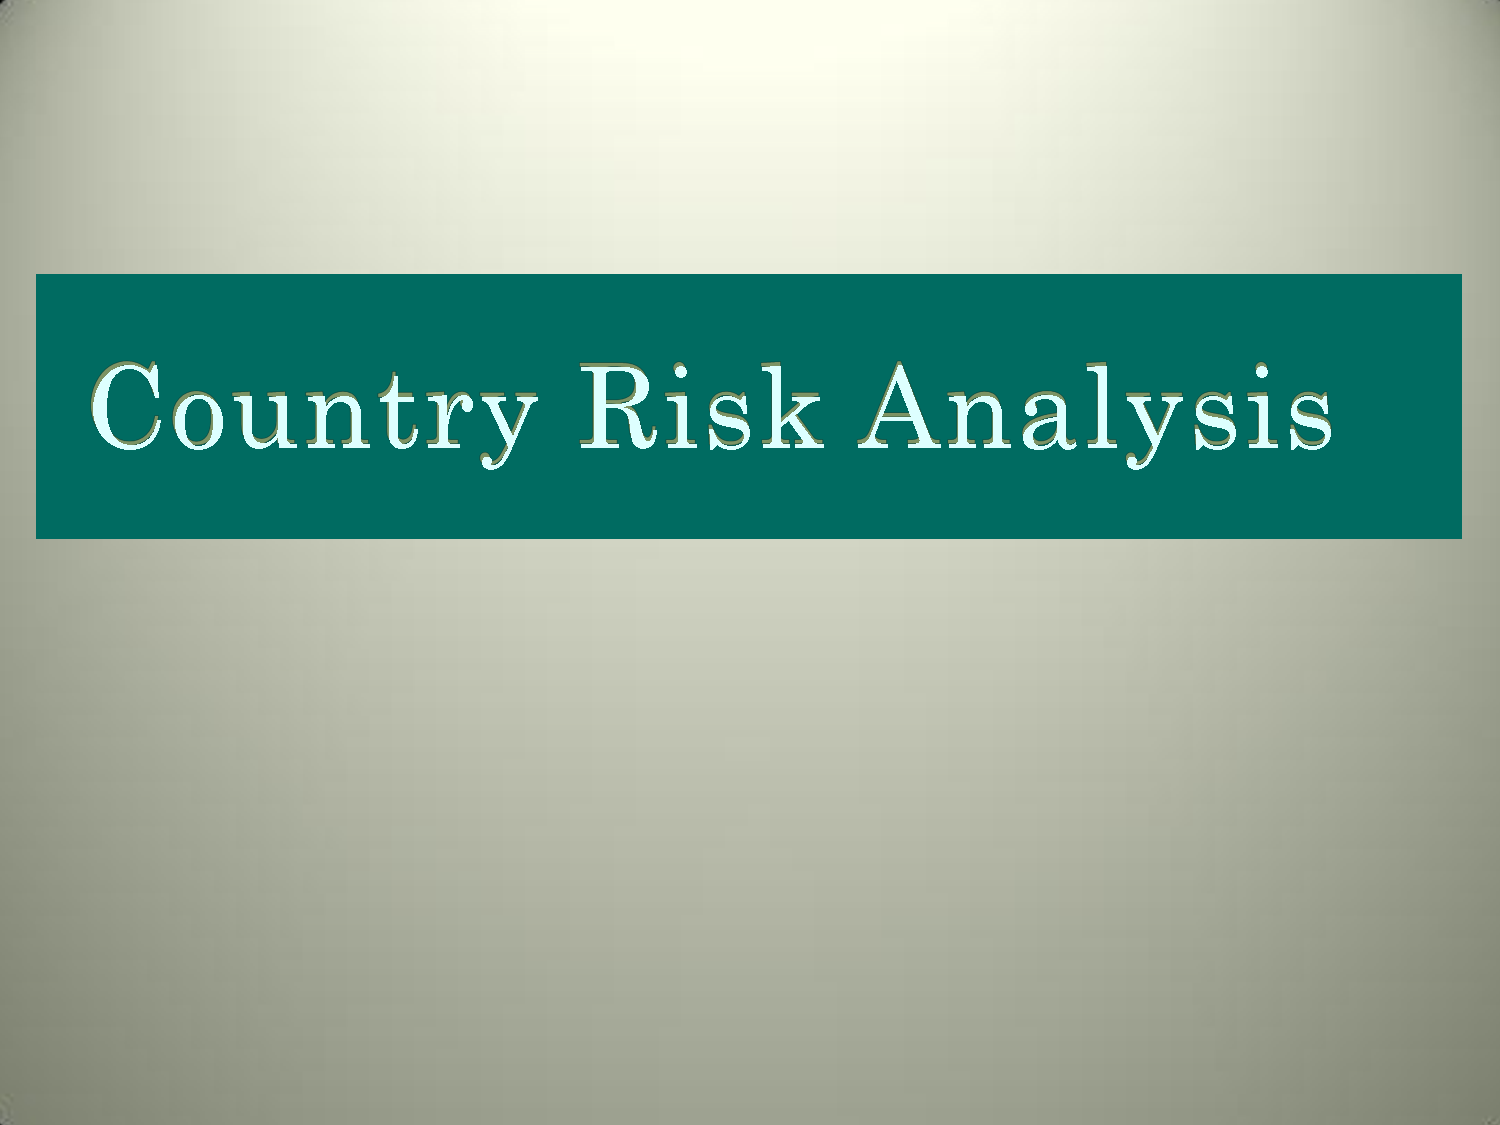 risks associated with international business transactions economics essay This well-known specialist llm, led by a team of reputed academics, explores  the complex legal issues arising out of international banking, trade and business .